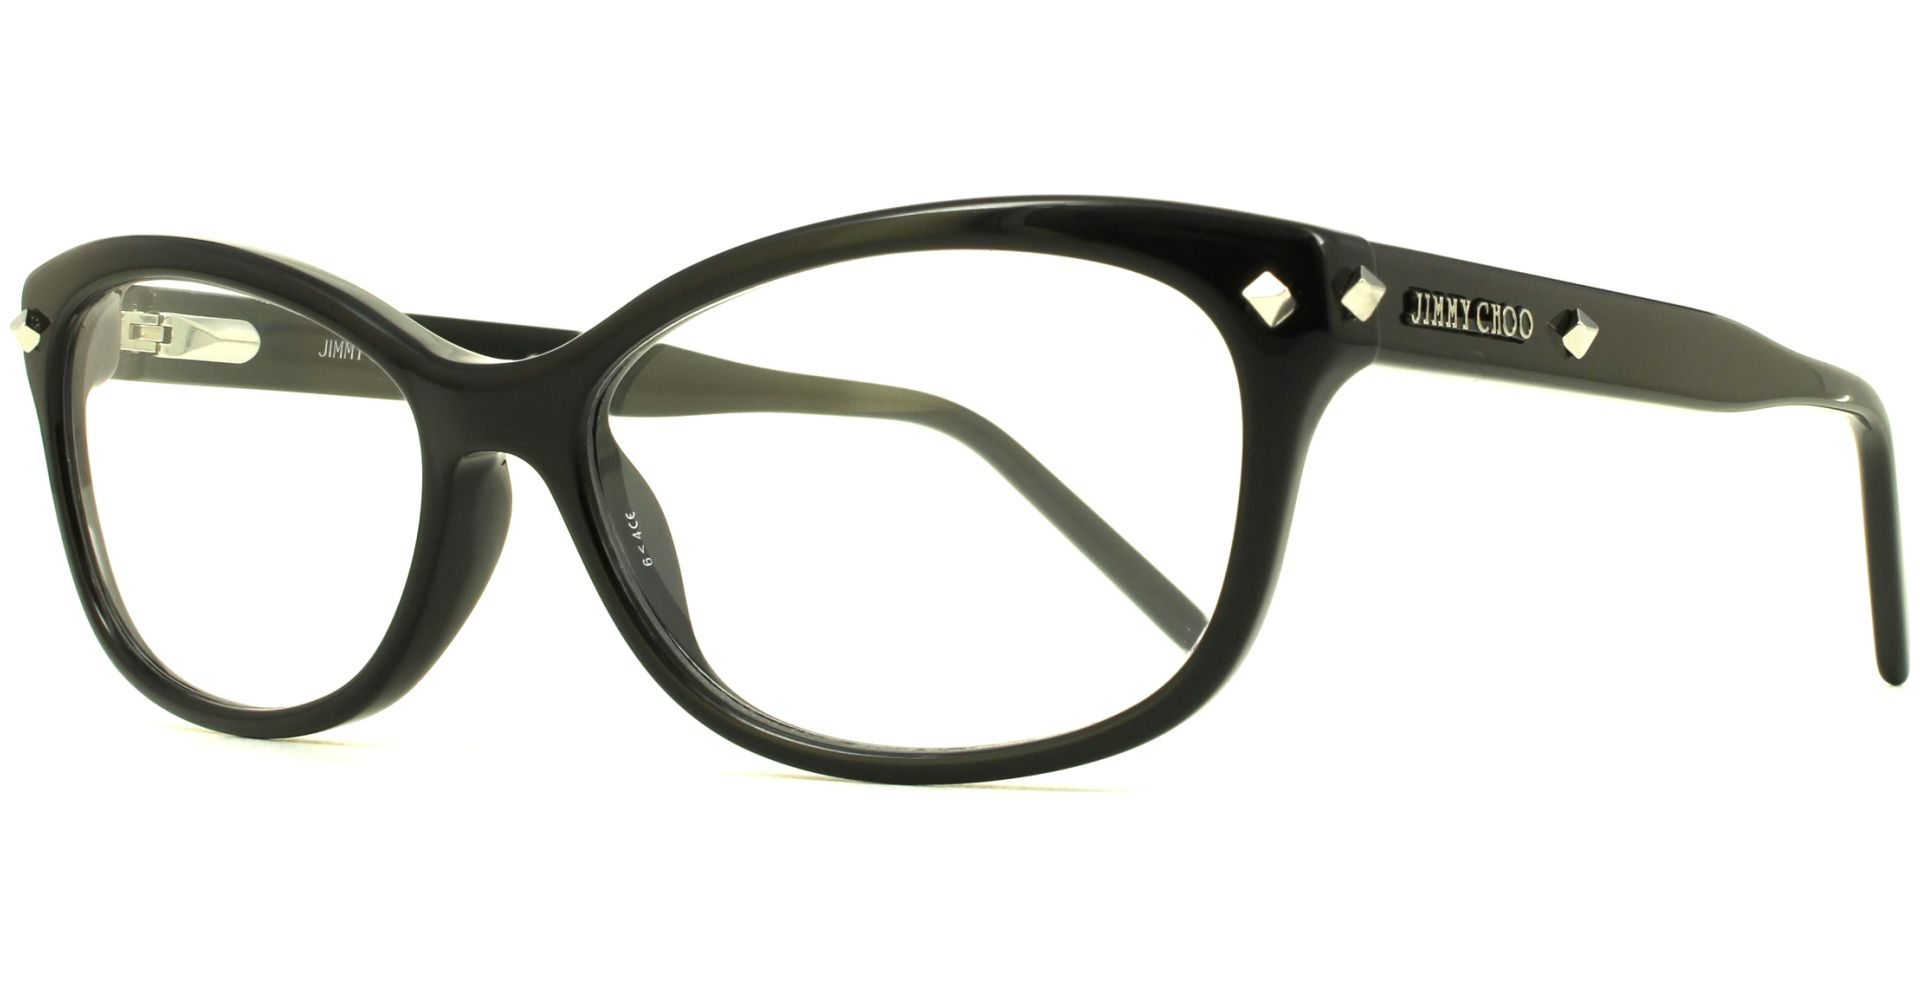 JIMMY CHOO Jimmy Choo Damen Brille » JC161«, braun, 05L - braun